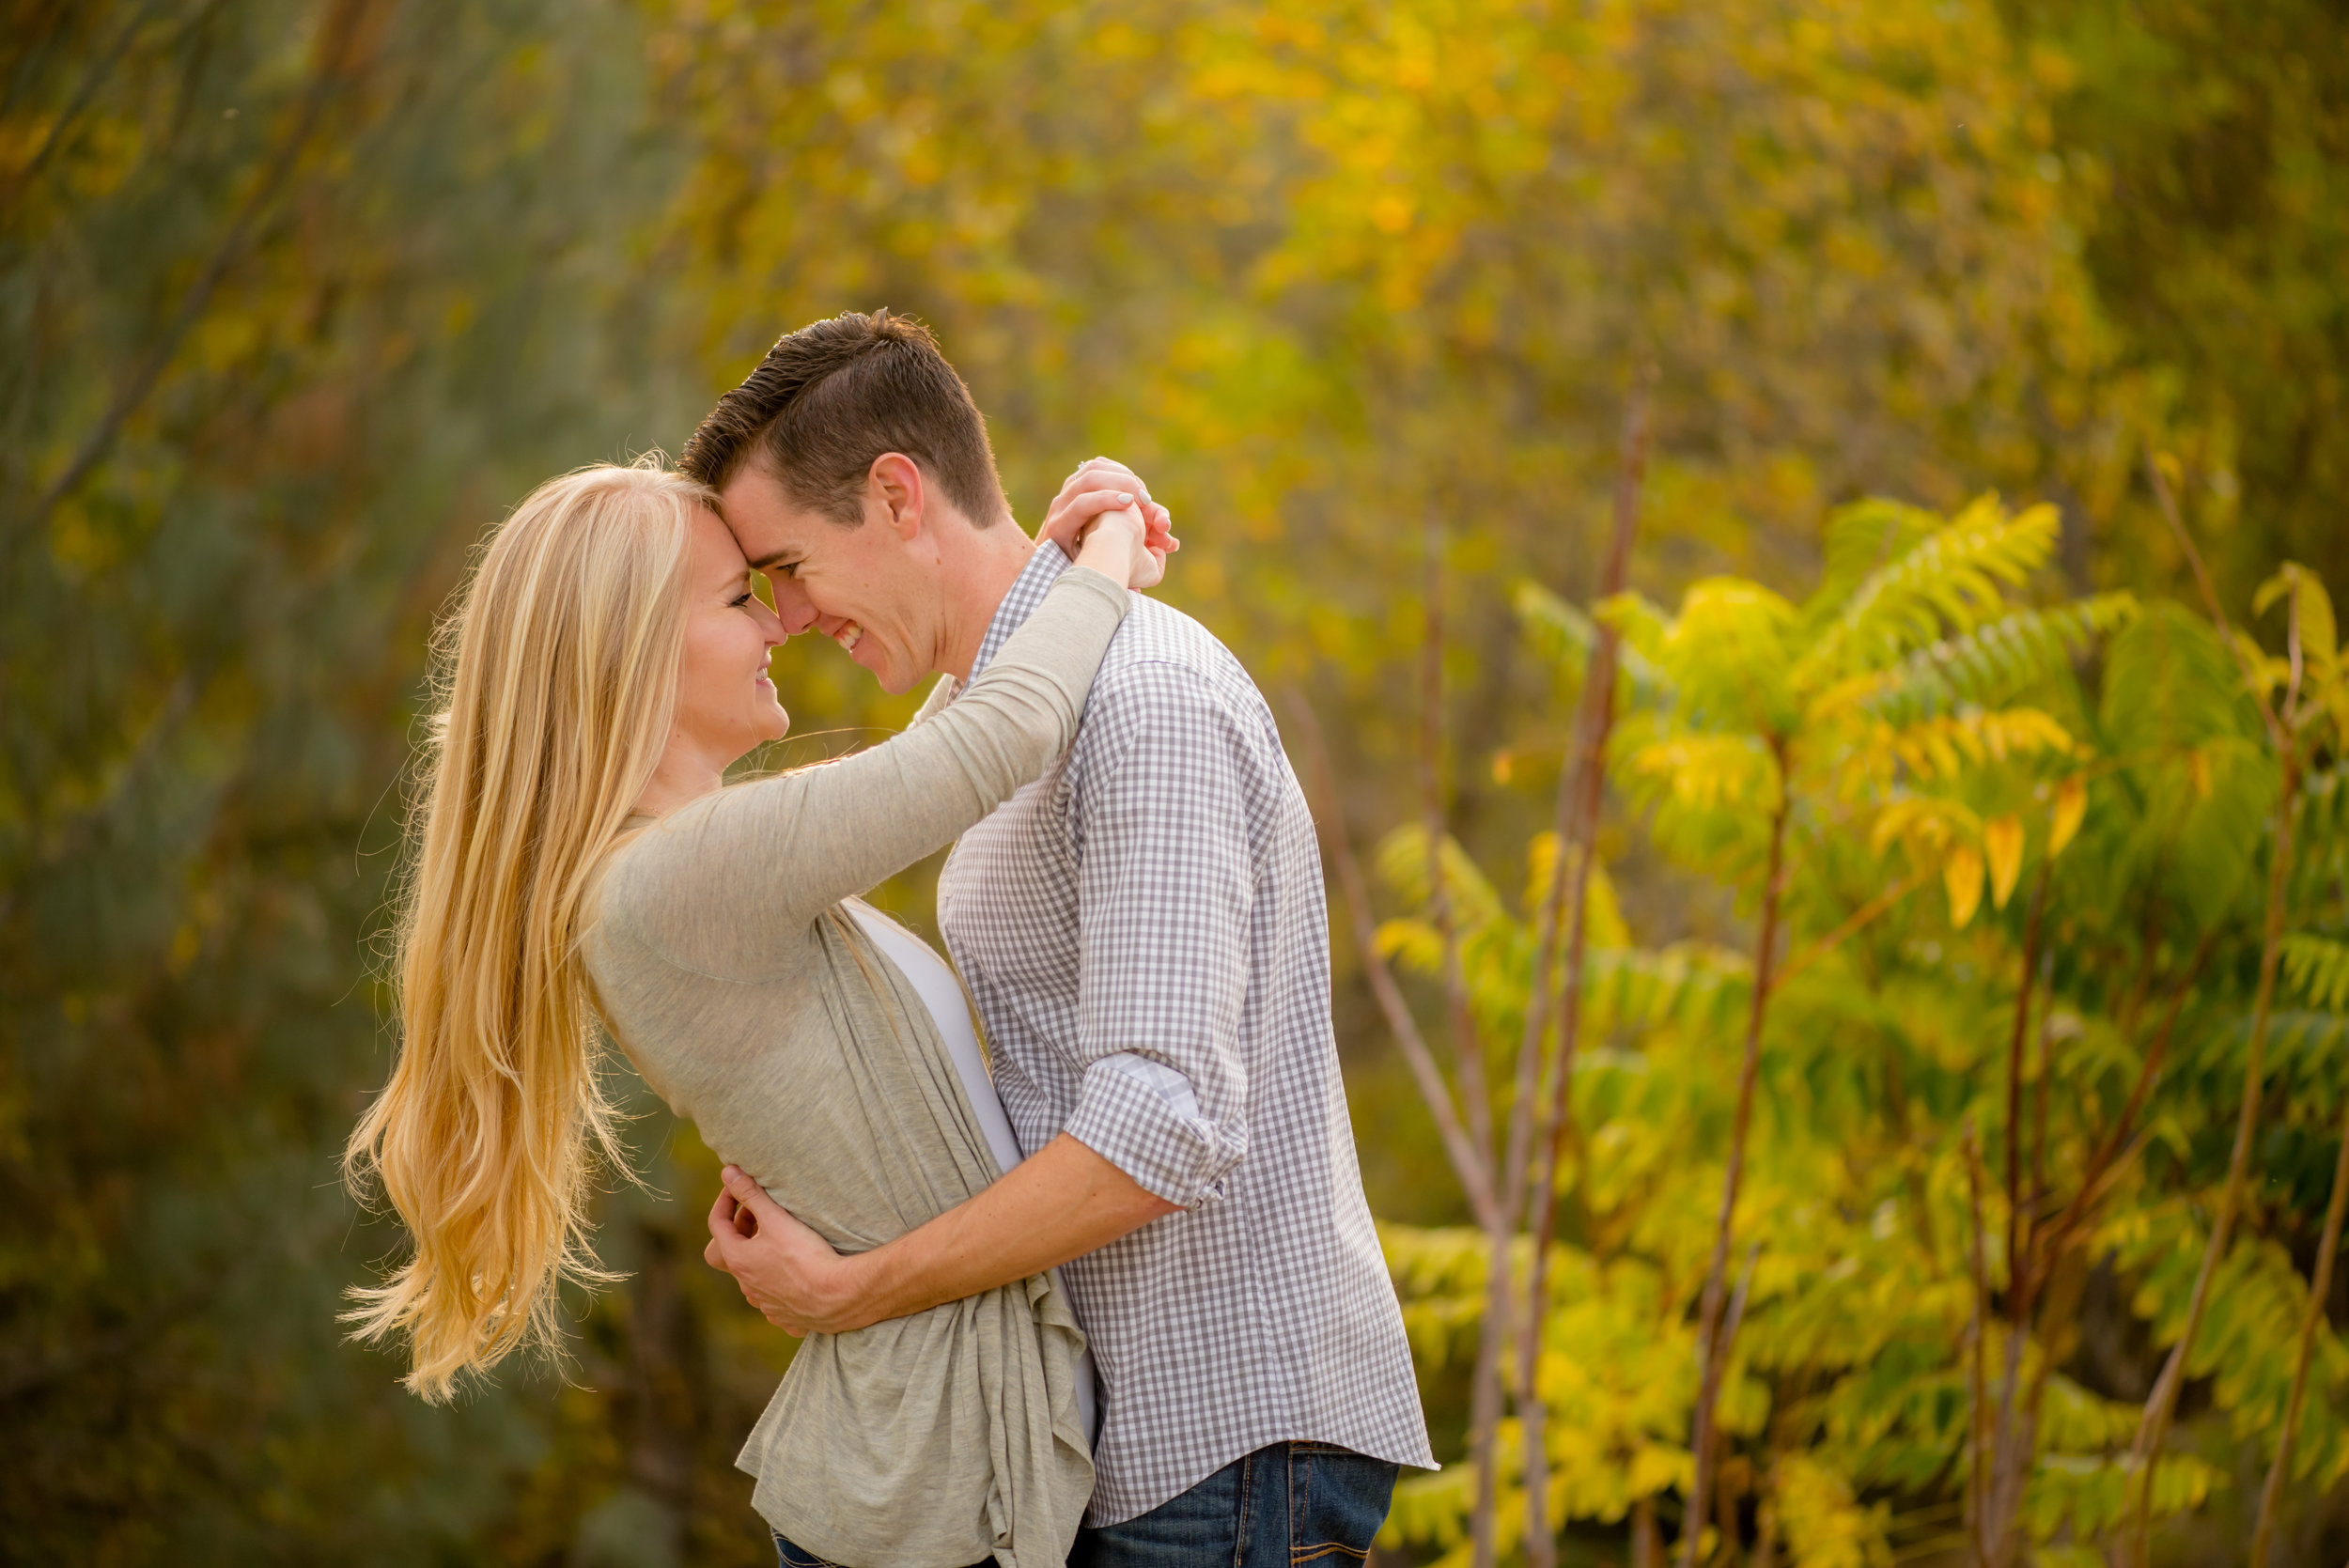 rachel-tanner-007-folsom-engagement-photos-wedding-photographer-katherine-nicole-photography.JPG